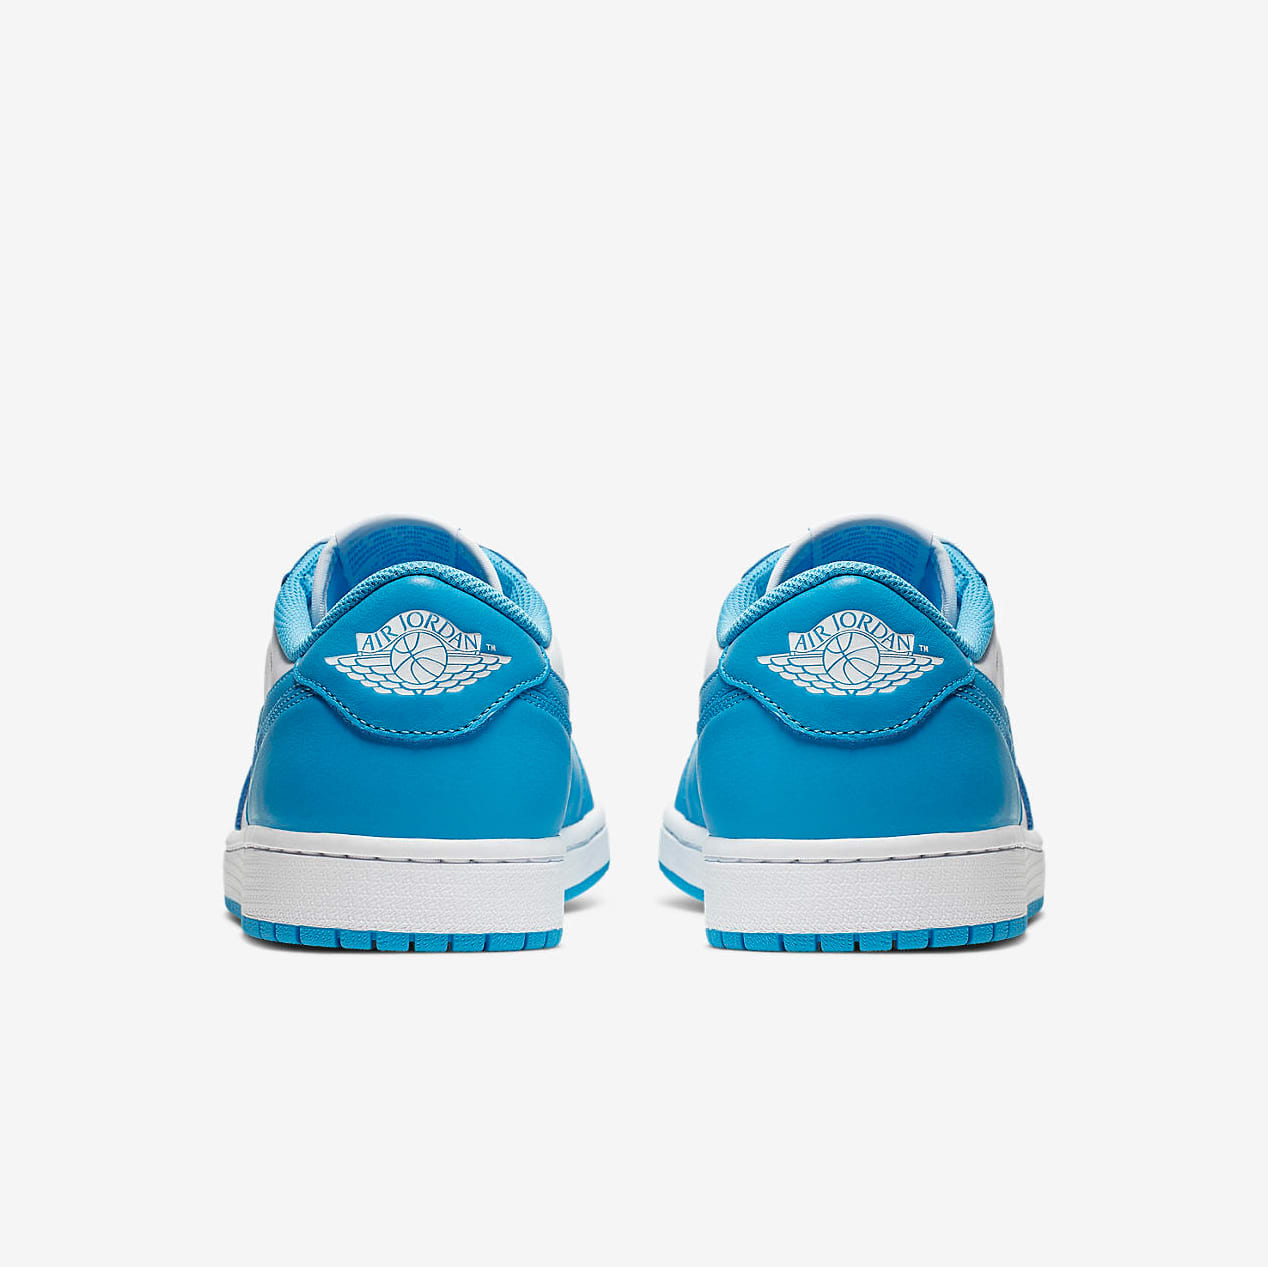 Nike SB Air Jordan 1 Low 'UNC' - CJ7891-401